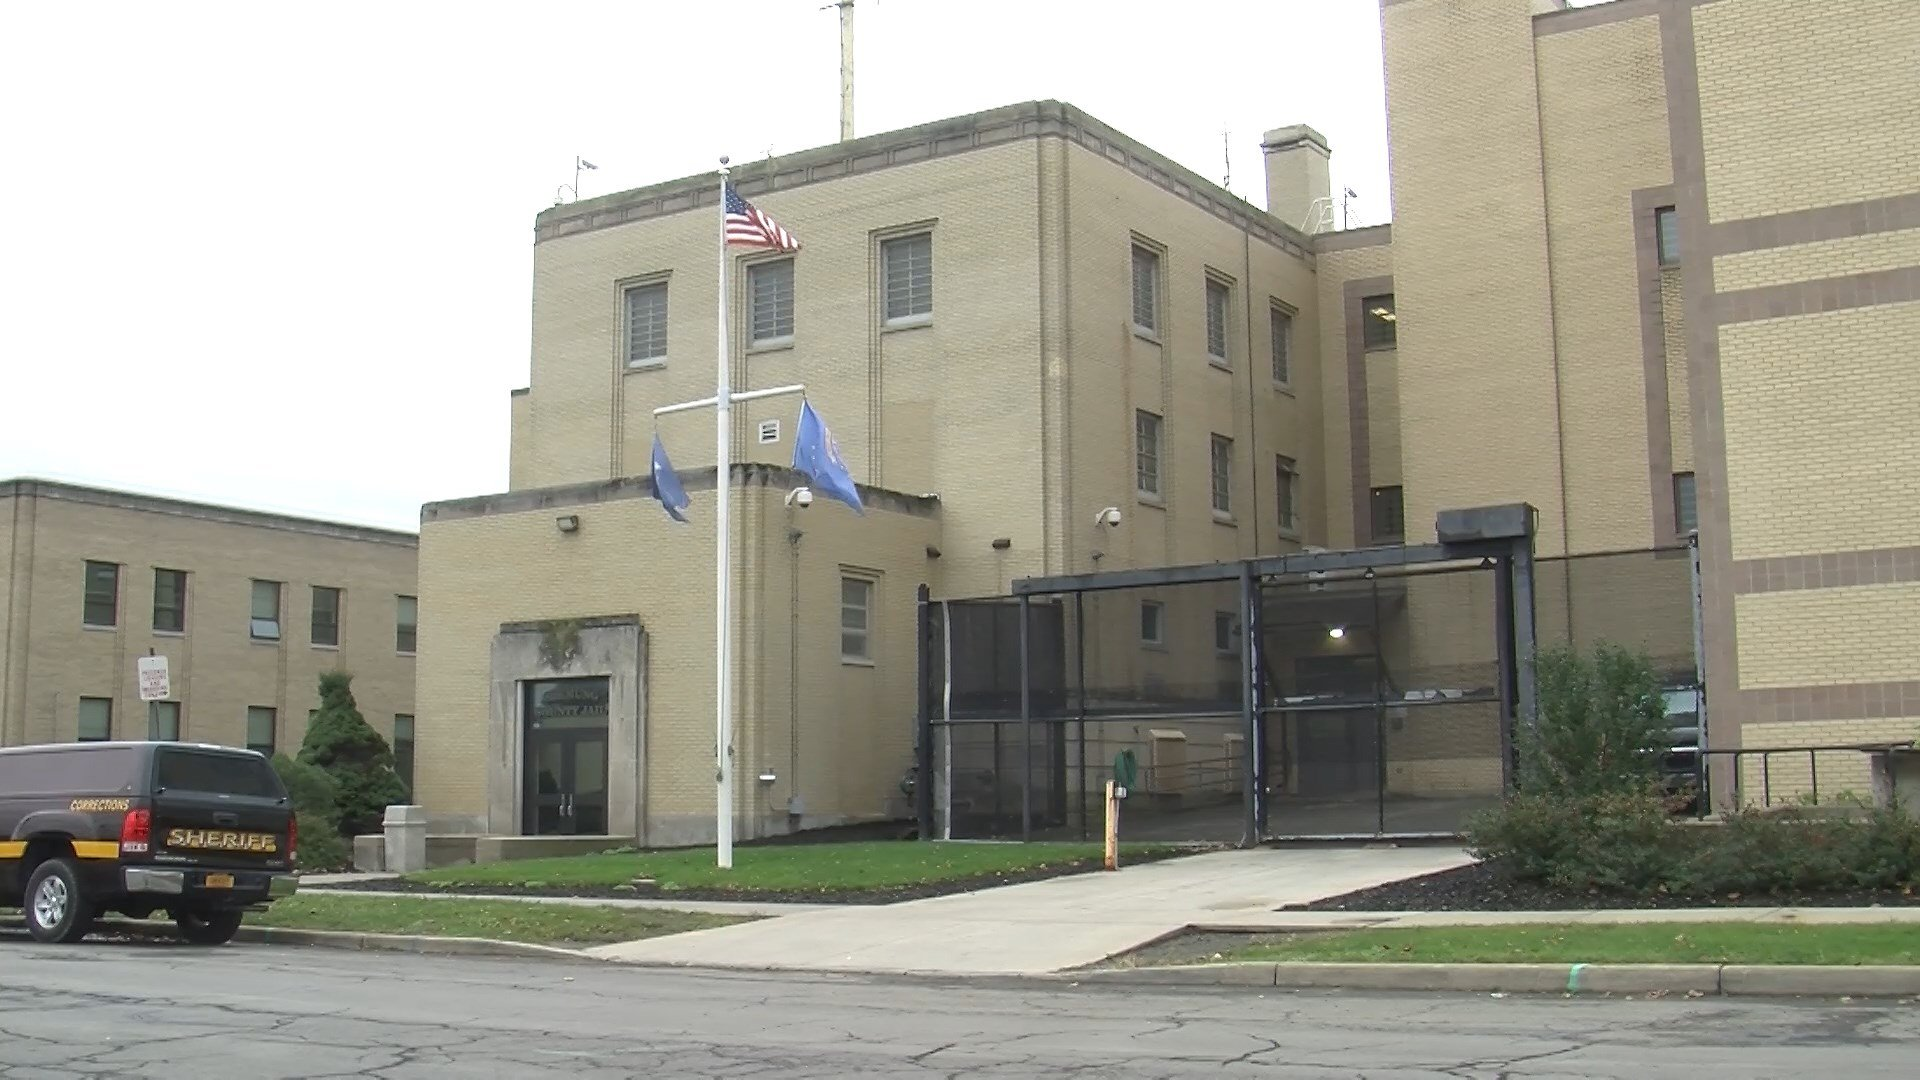 Baptist Church cluster connected to cases at jail